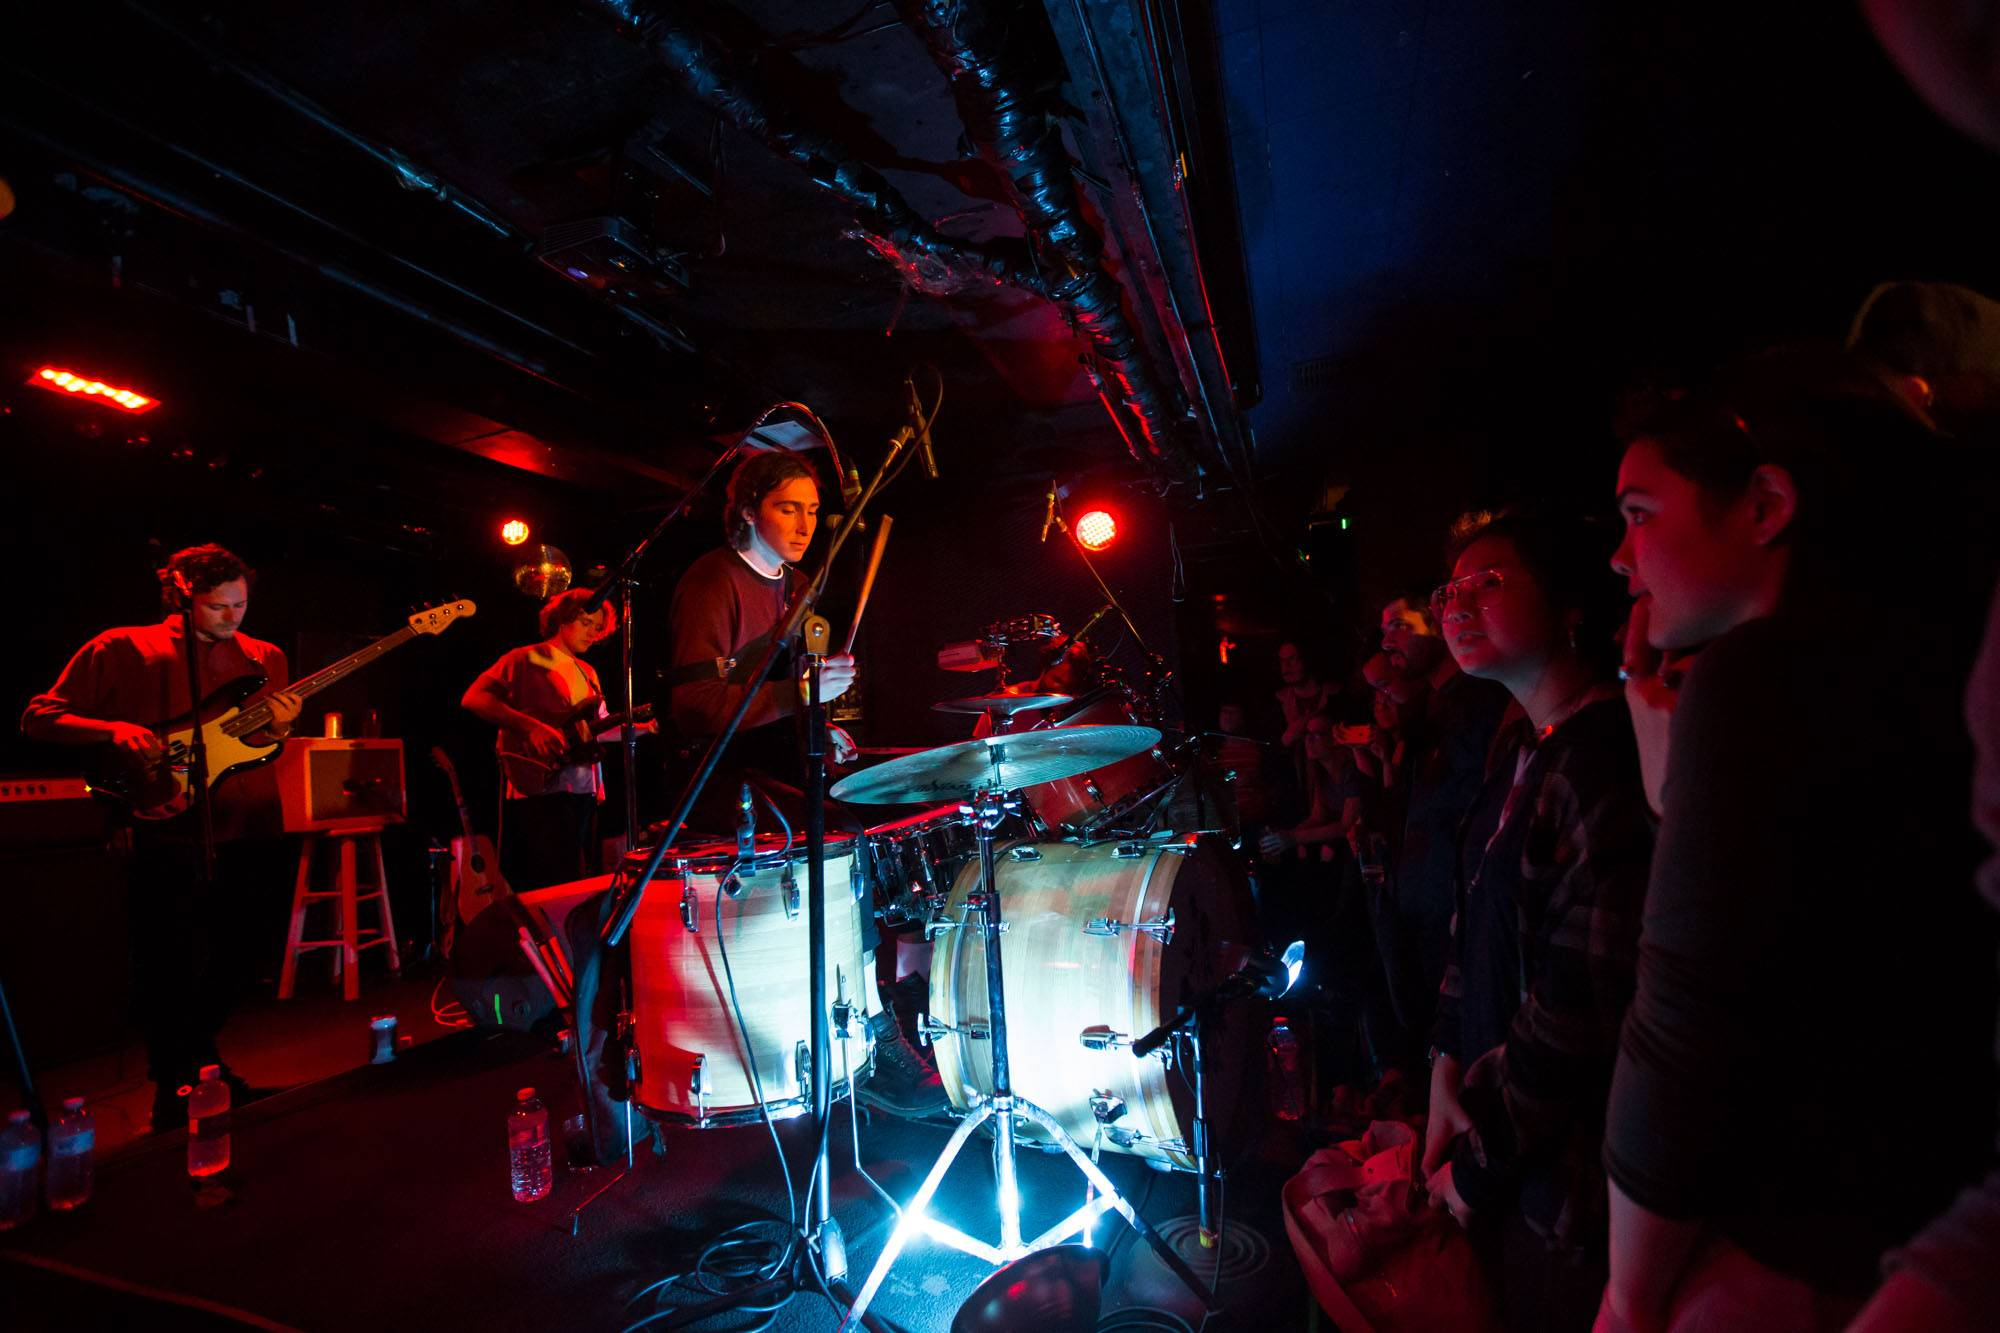 Whitney at the Biltmore Cabaret, Vancouver, Apr. 10 2017. Kirk Chantraine photo.